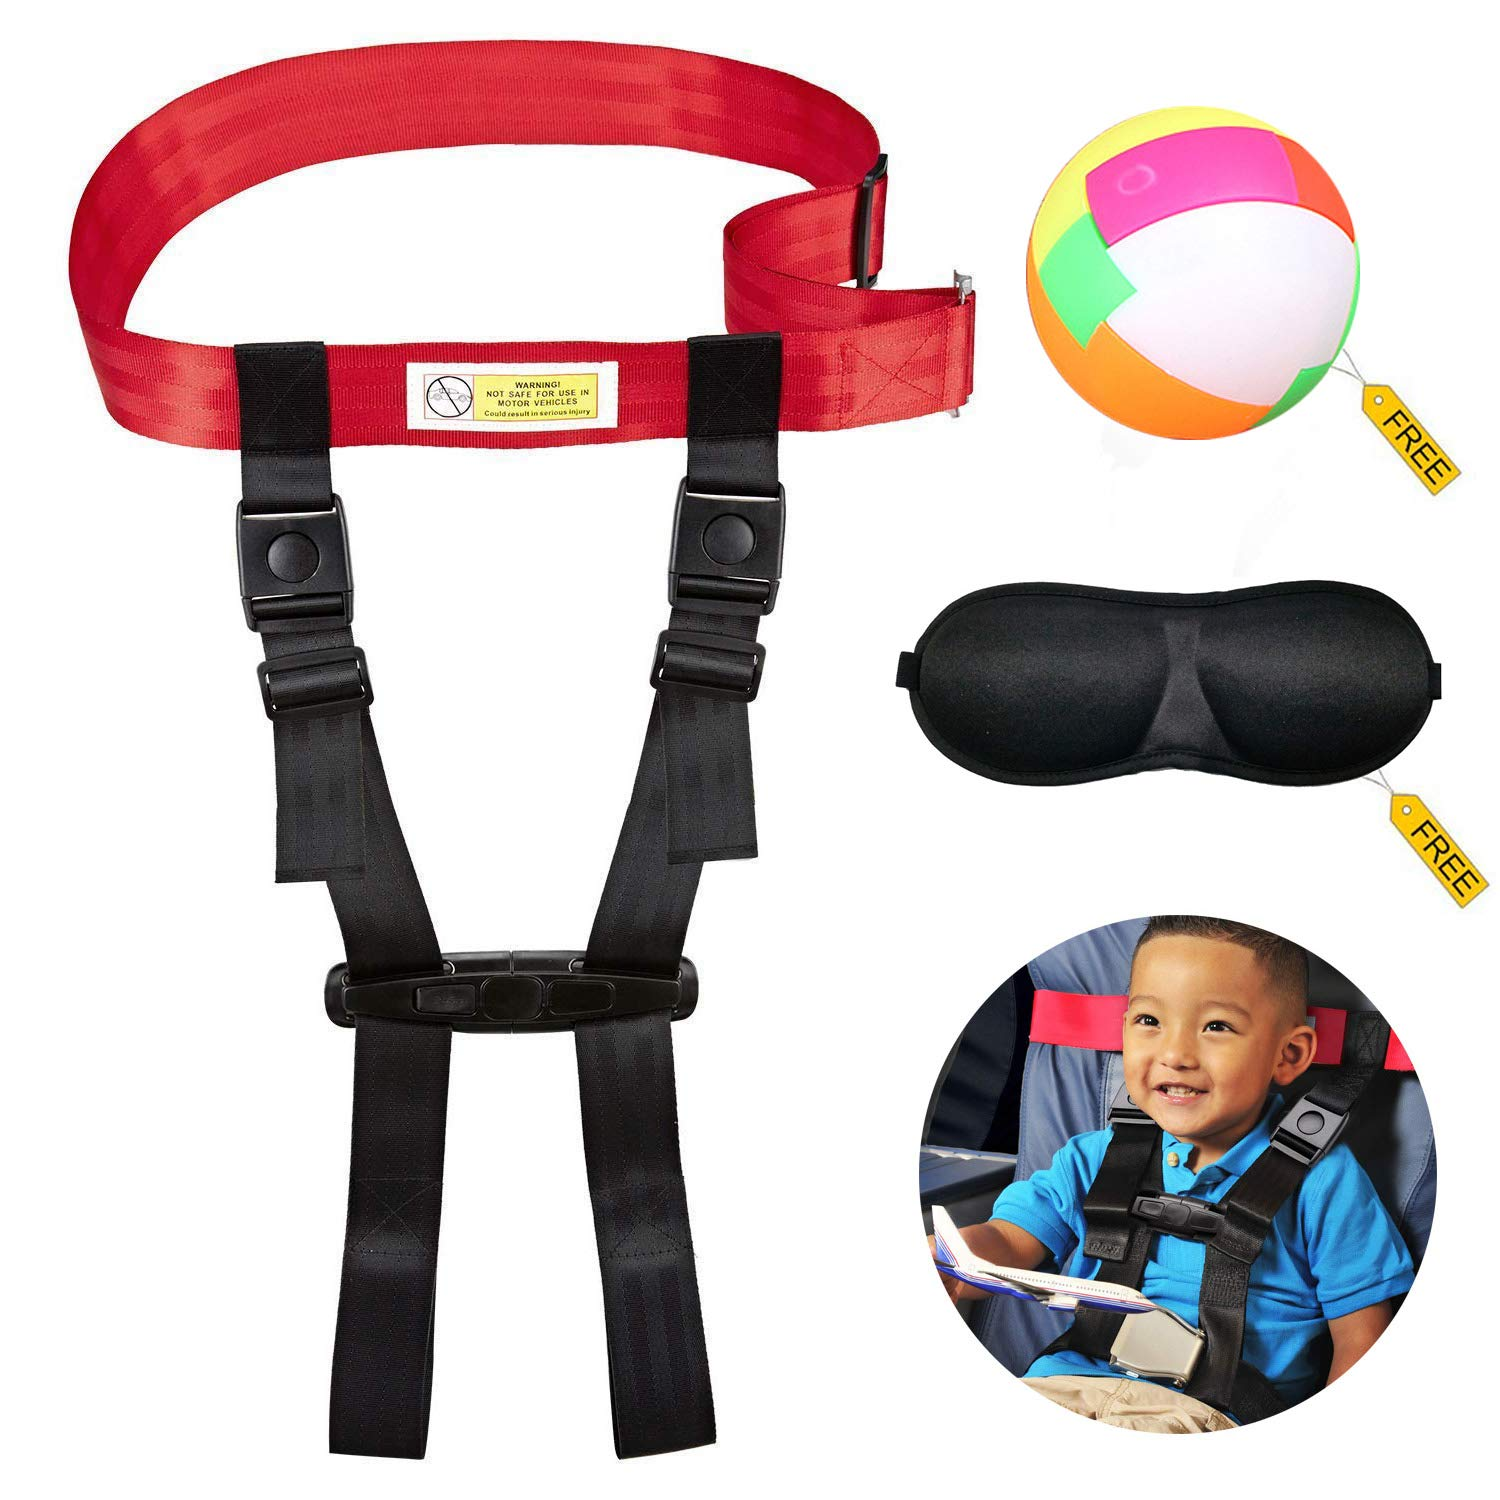 Child Airplane Travel Safety Harness,A Seat Belt That Restraint Kids When Flying,The Travel Harness Clip Strap Will Keep Your Children Safe and Give Free Gift.